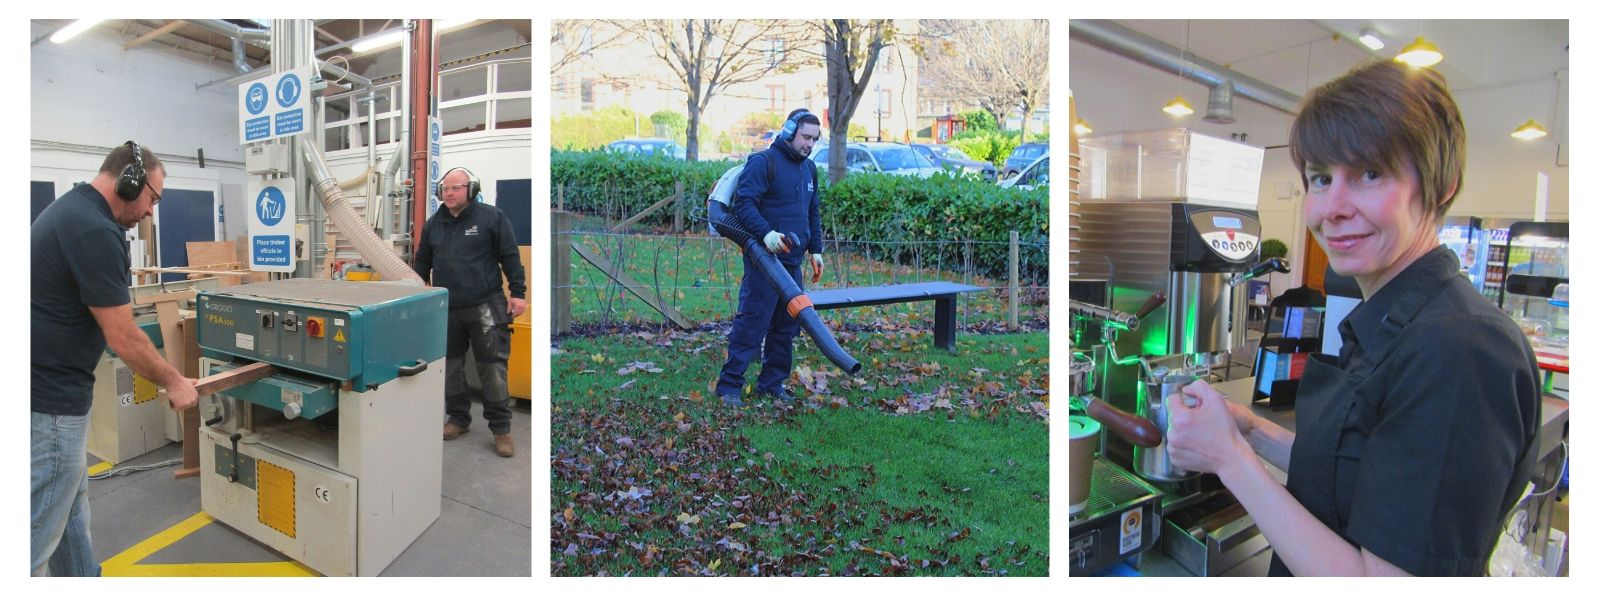 Estates staff at work: joiners, gardener, food and beverage assistant